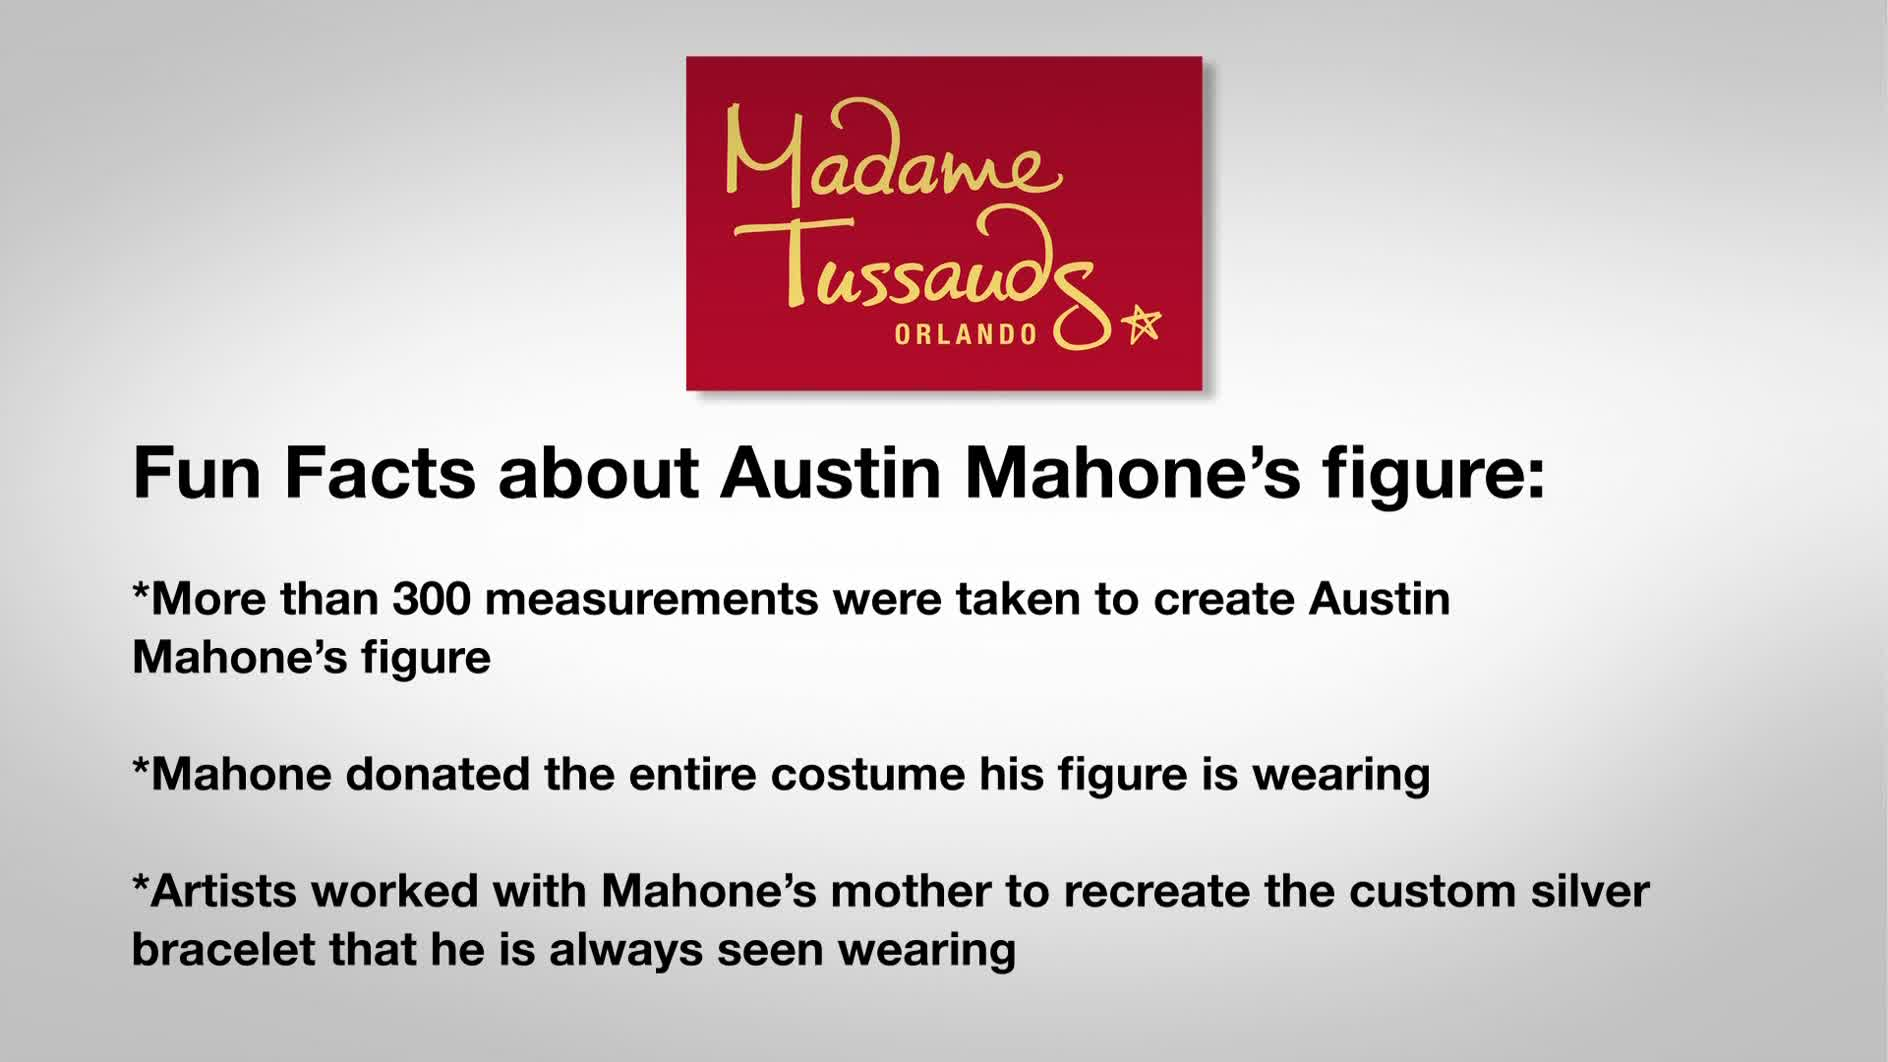 Teen sensation and pop artist Austin Mahone played a practical joke on a few of his unwitting fans this week at Madame Tussauds Orlando.